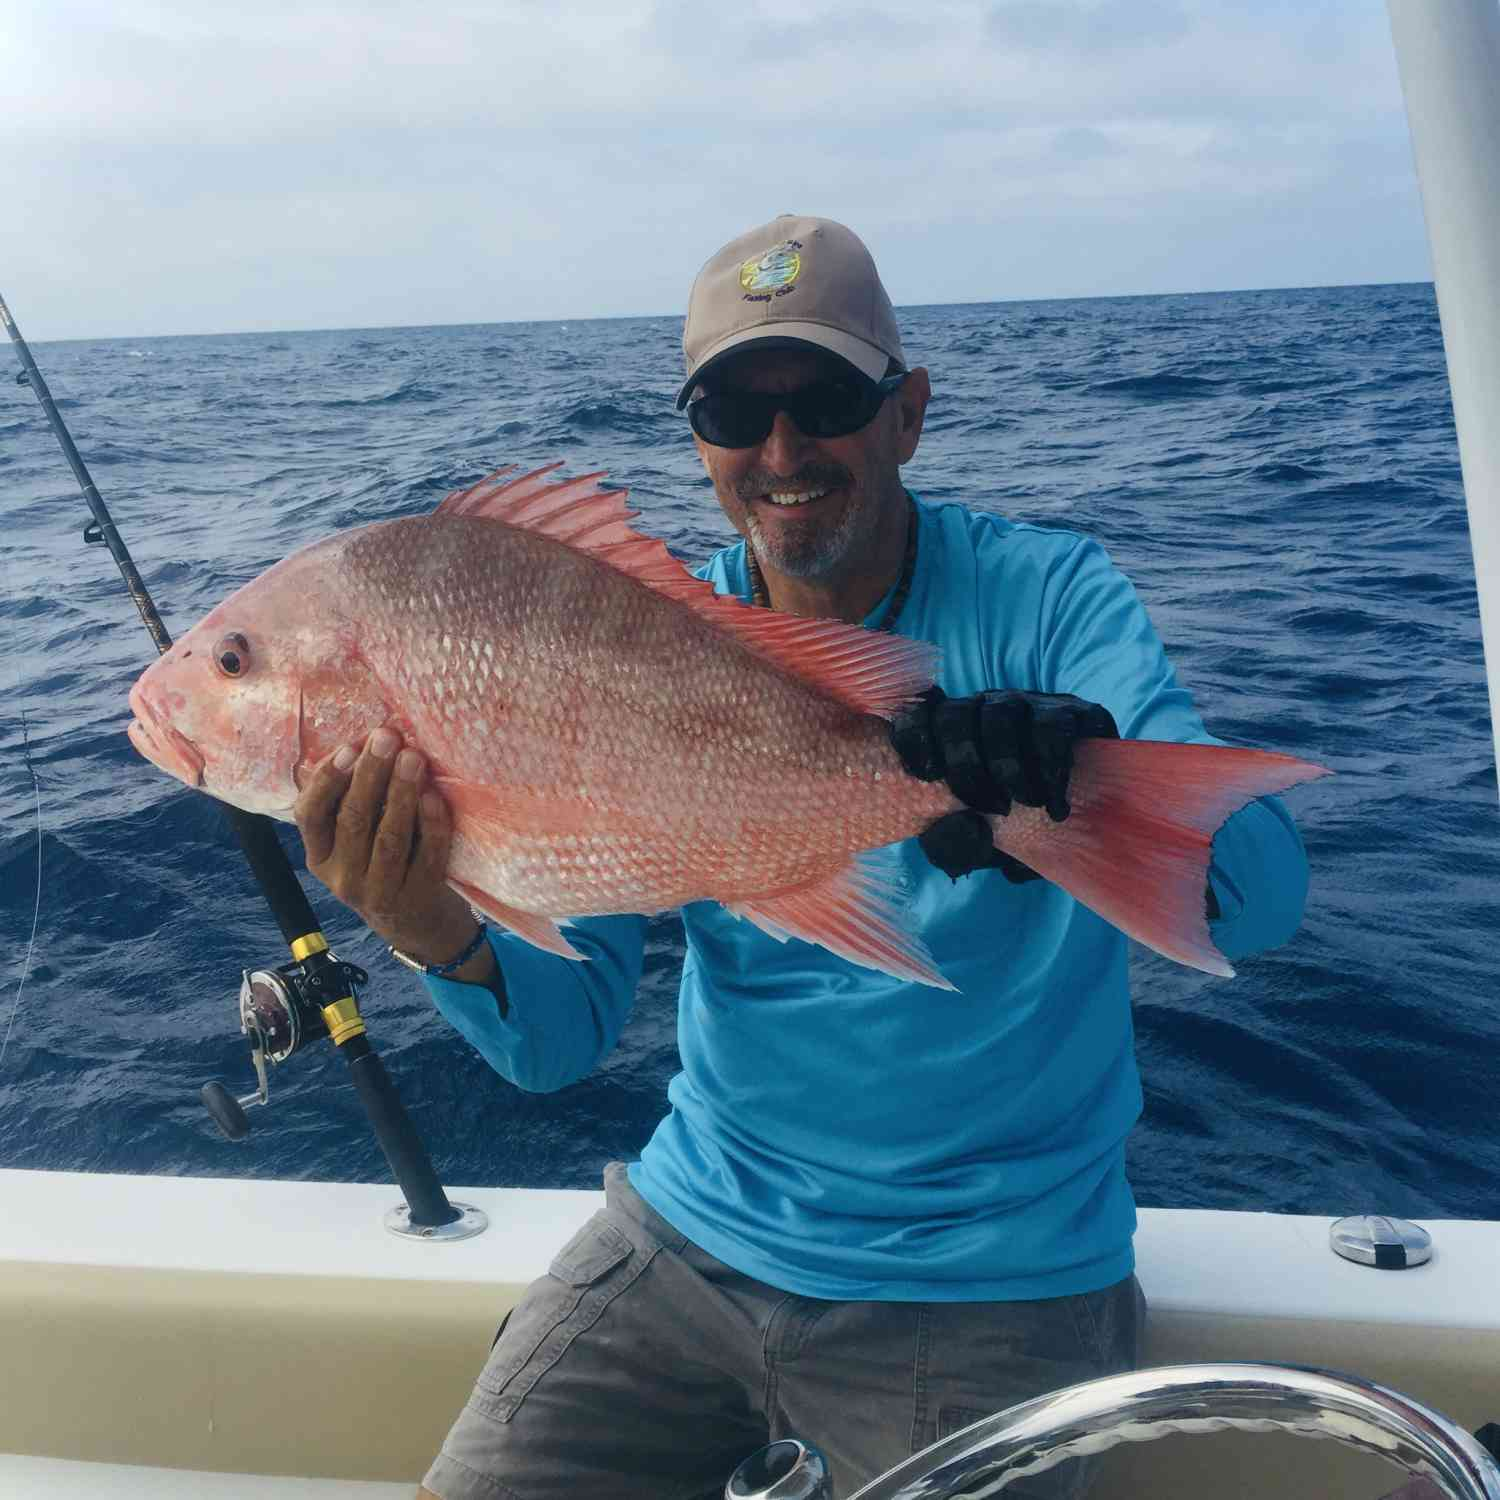 Title: Early Red Snapper - On board their Sportsman Heritage 251 Center Console - Location: Gulf of Mexico off Boca Grande. Participating in the Photo Contest #SportsmanJune2020